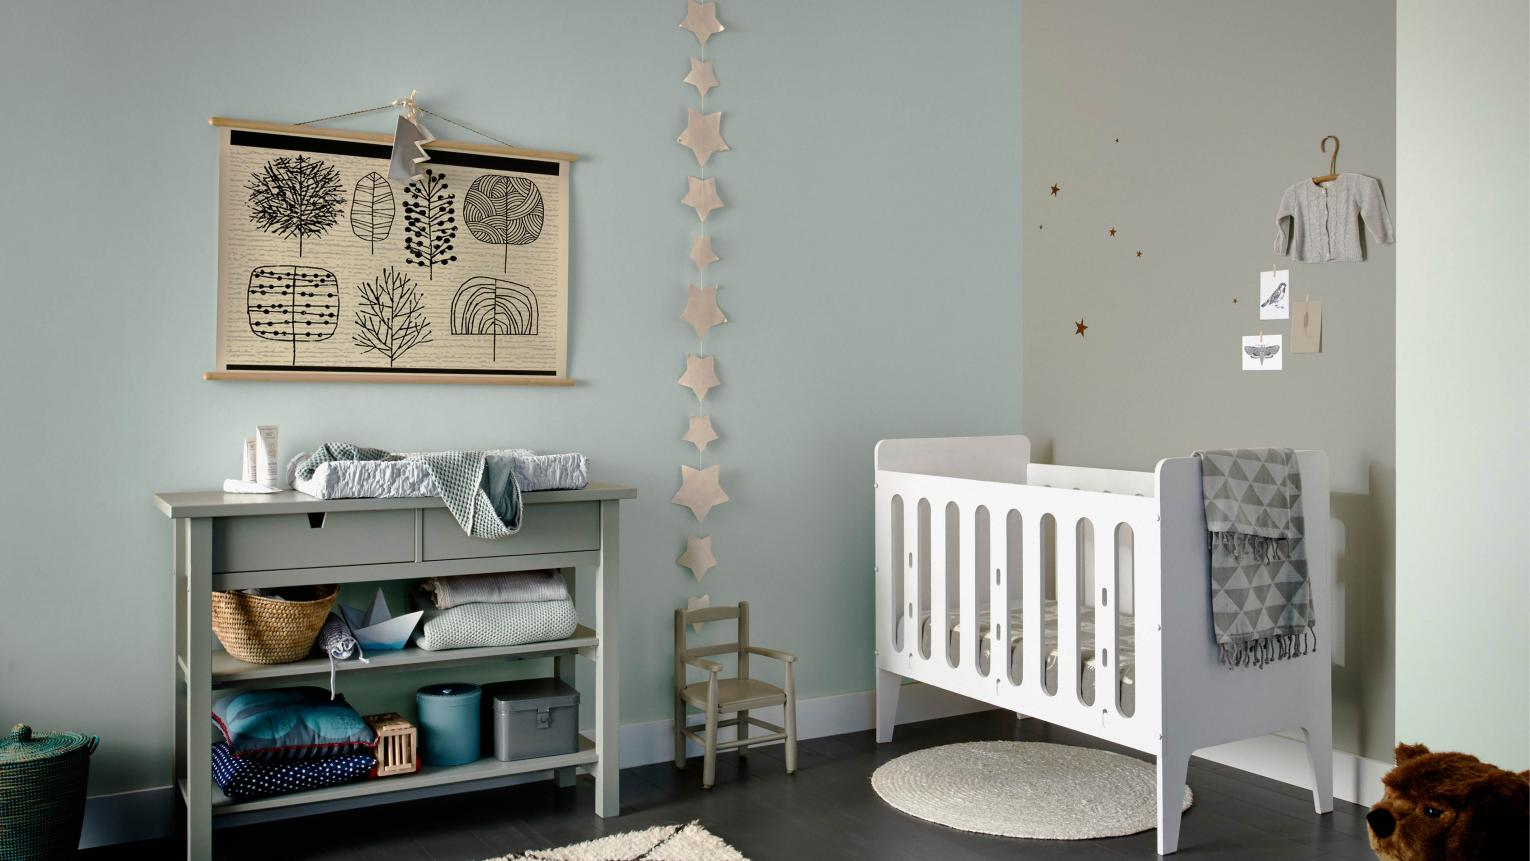 Whether you're waiting until the birth to discover the sex of your baby, or you're simply not excited by traditional blue and pink colour schemes, gender-neutral nurseries are an increasingly popular decorating option.